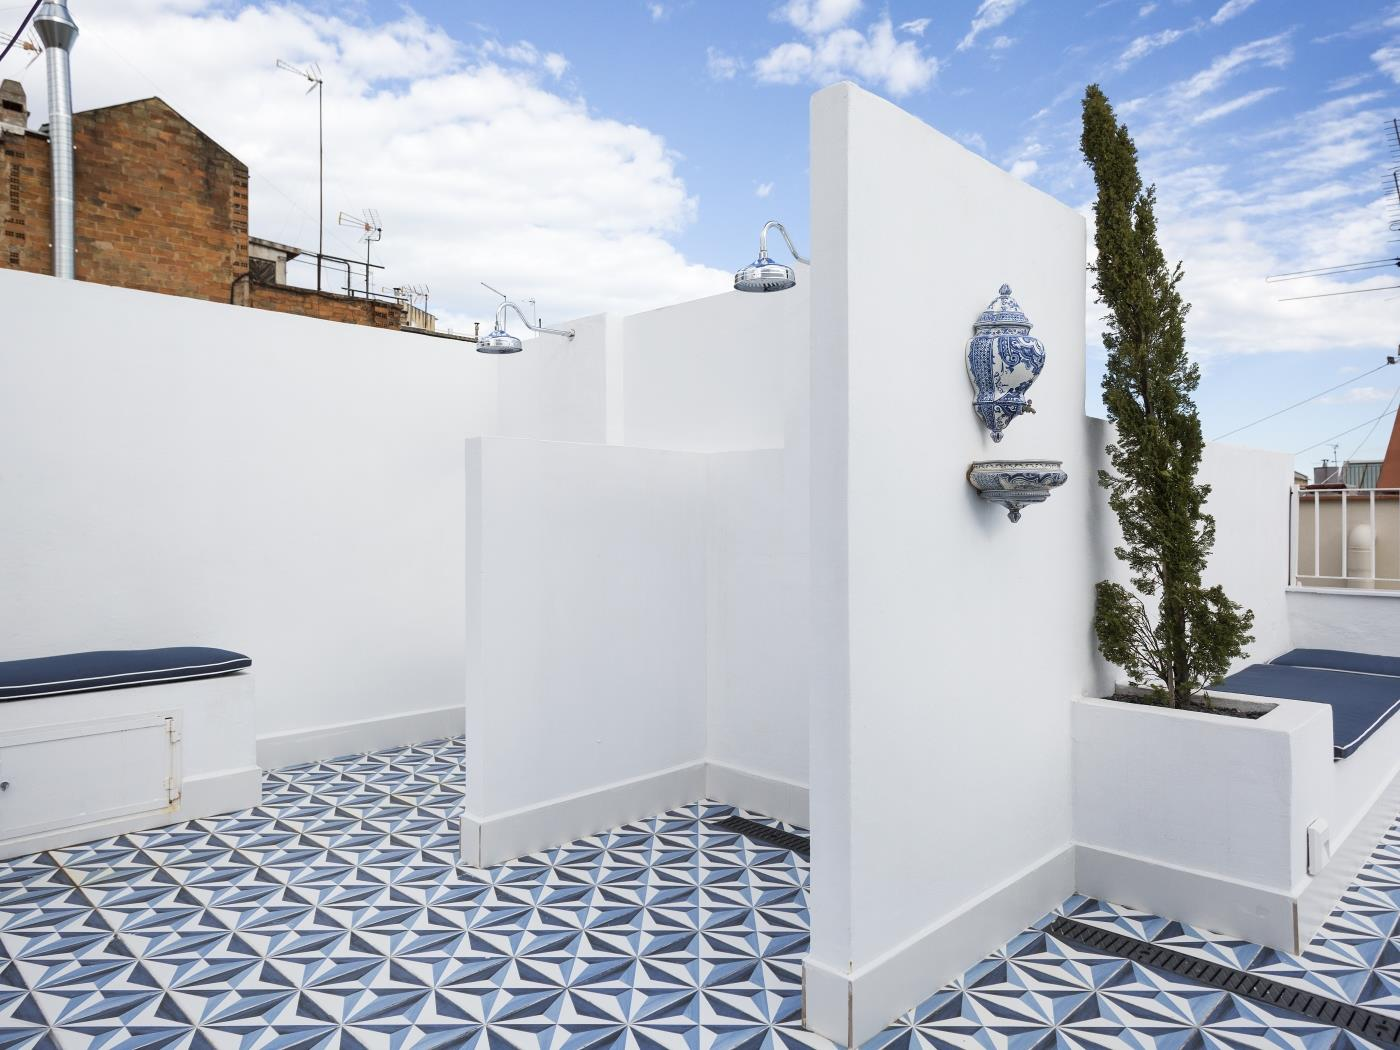 Appartement avec balcon et rooftop commun - My Space Barcelona Appartements